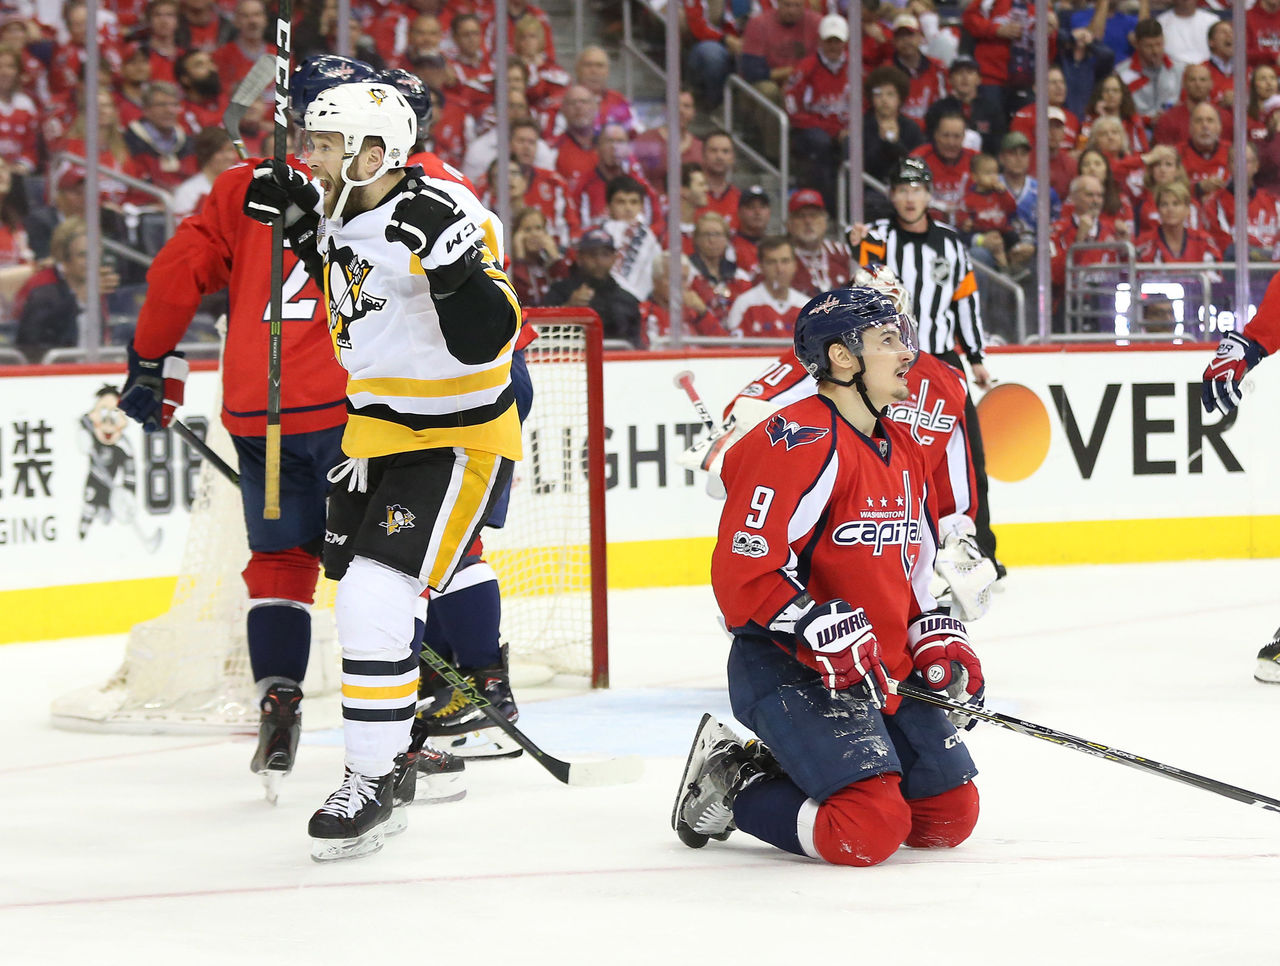 Cropped 2017 05 11t005910z 1699558249 nocid rtrmadp 3 nhl stanley cup playoffs pittsburgh penguins at washington capitals